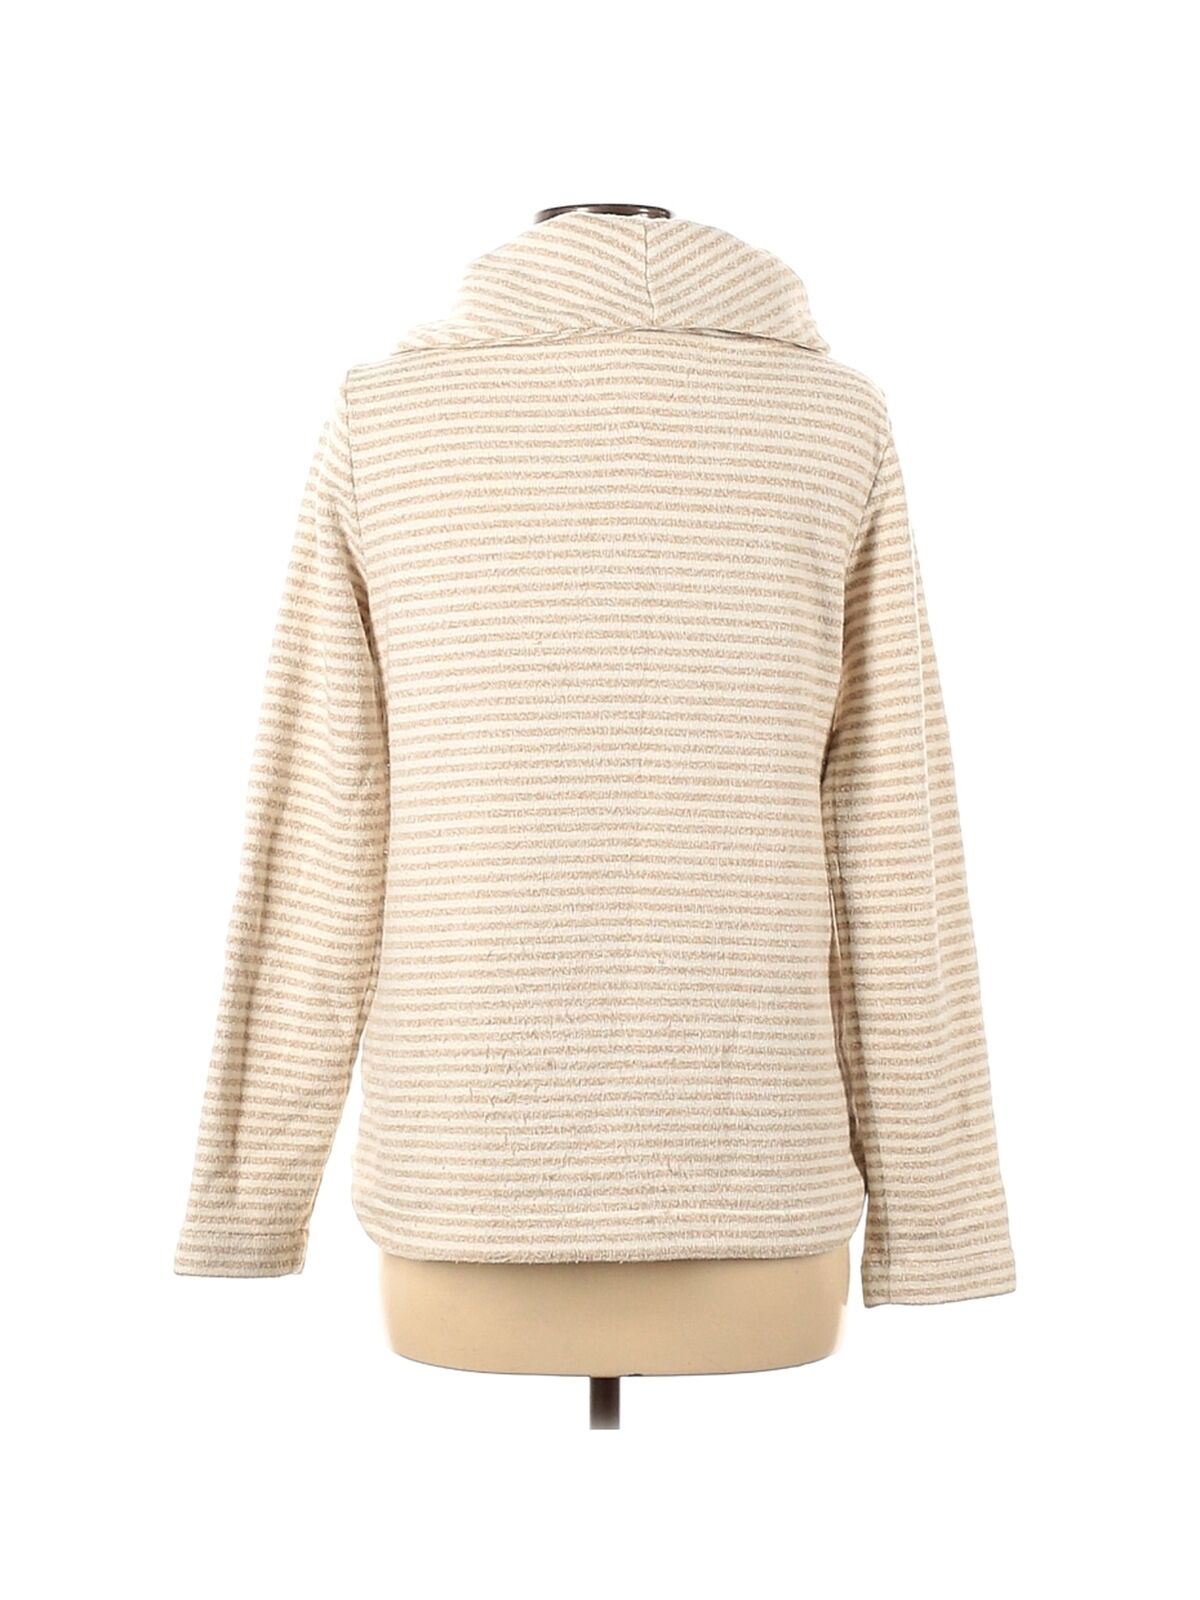 Tommy Hilfiger Women Brown Pullover Sweater S - image 2